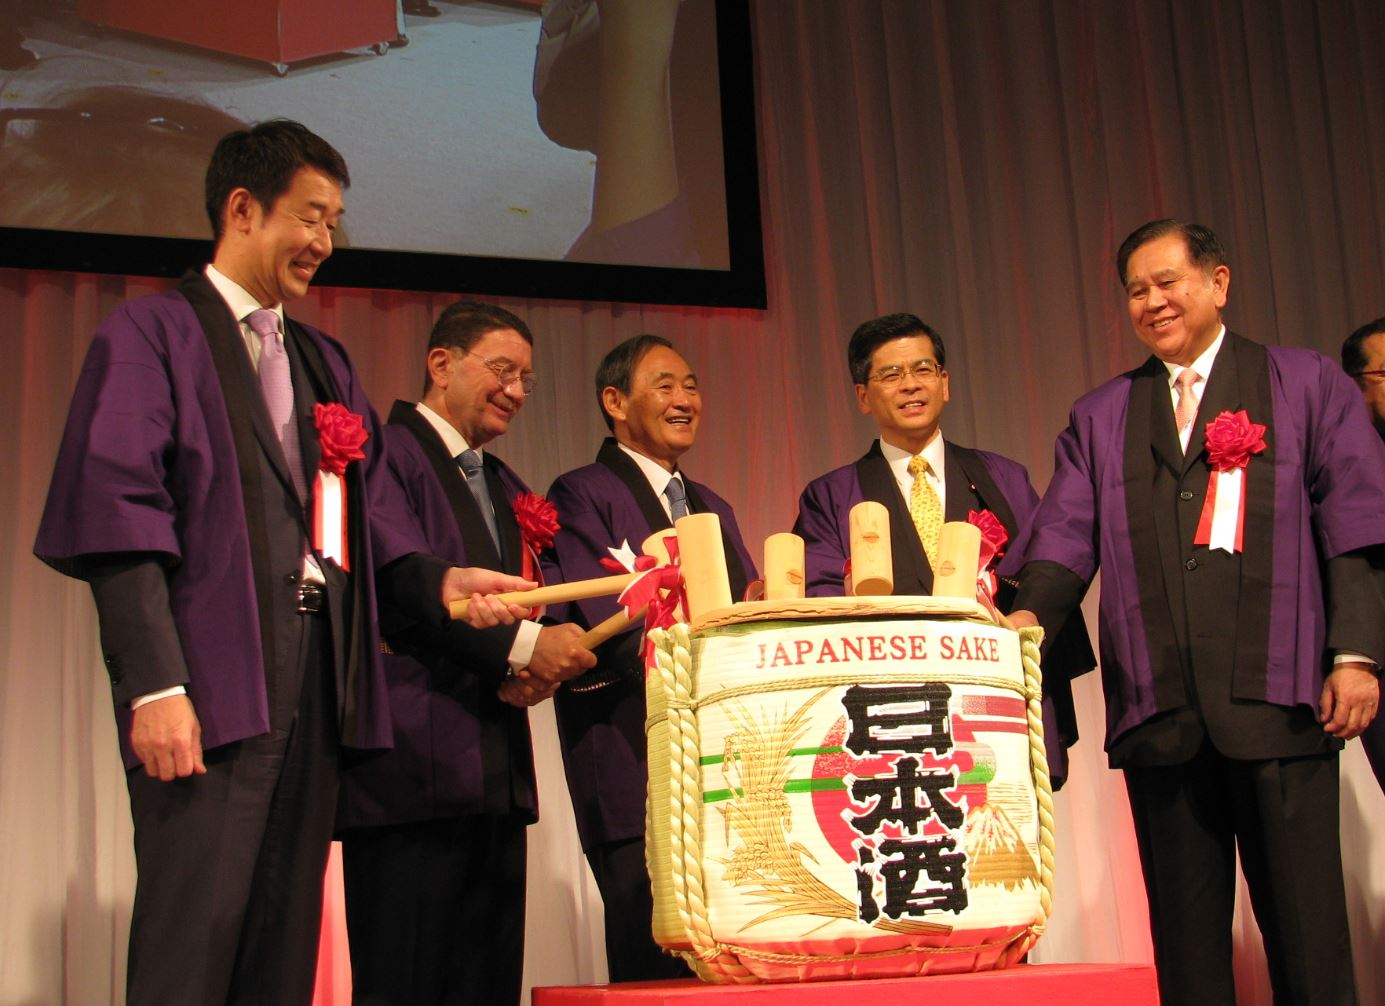 Tourism EXPO Japan 2016 opened, joined by Chief Cabinet Secretary of the Japanese government